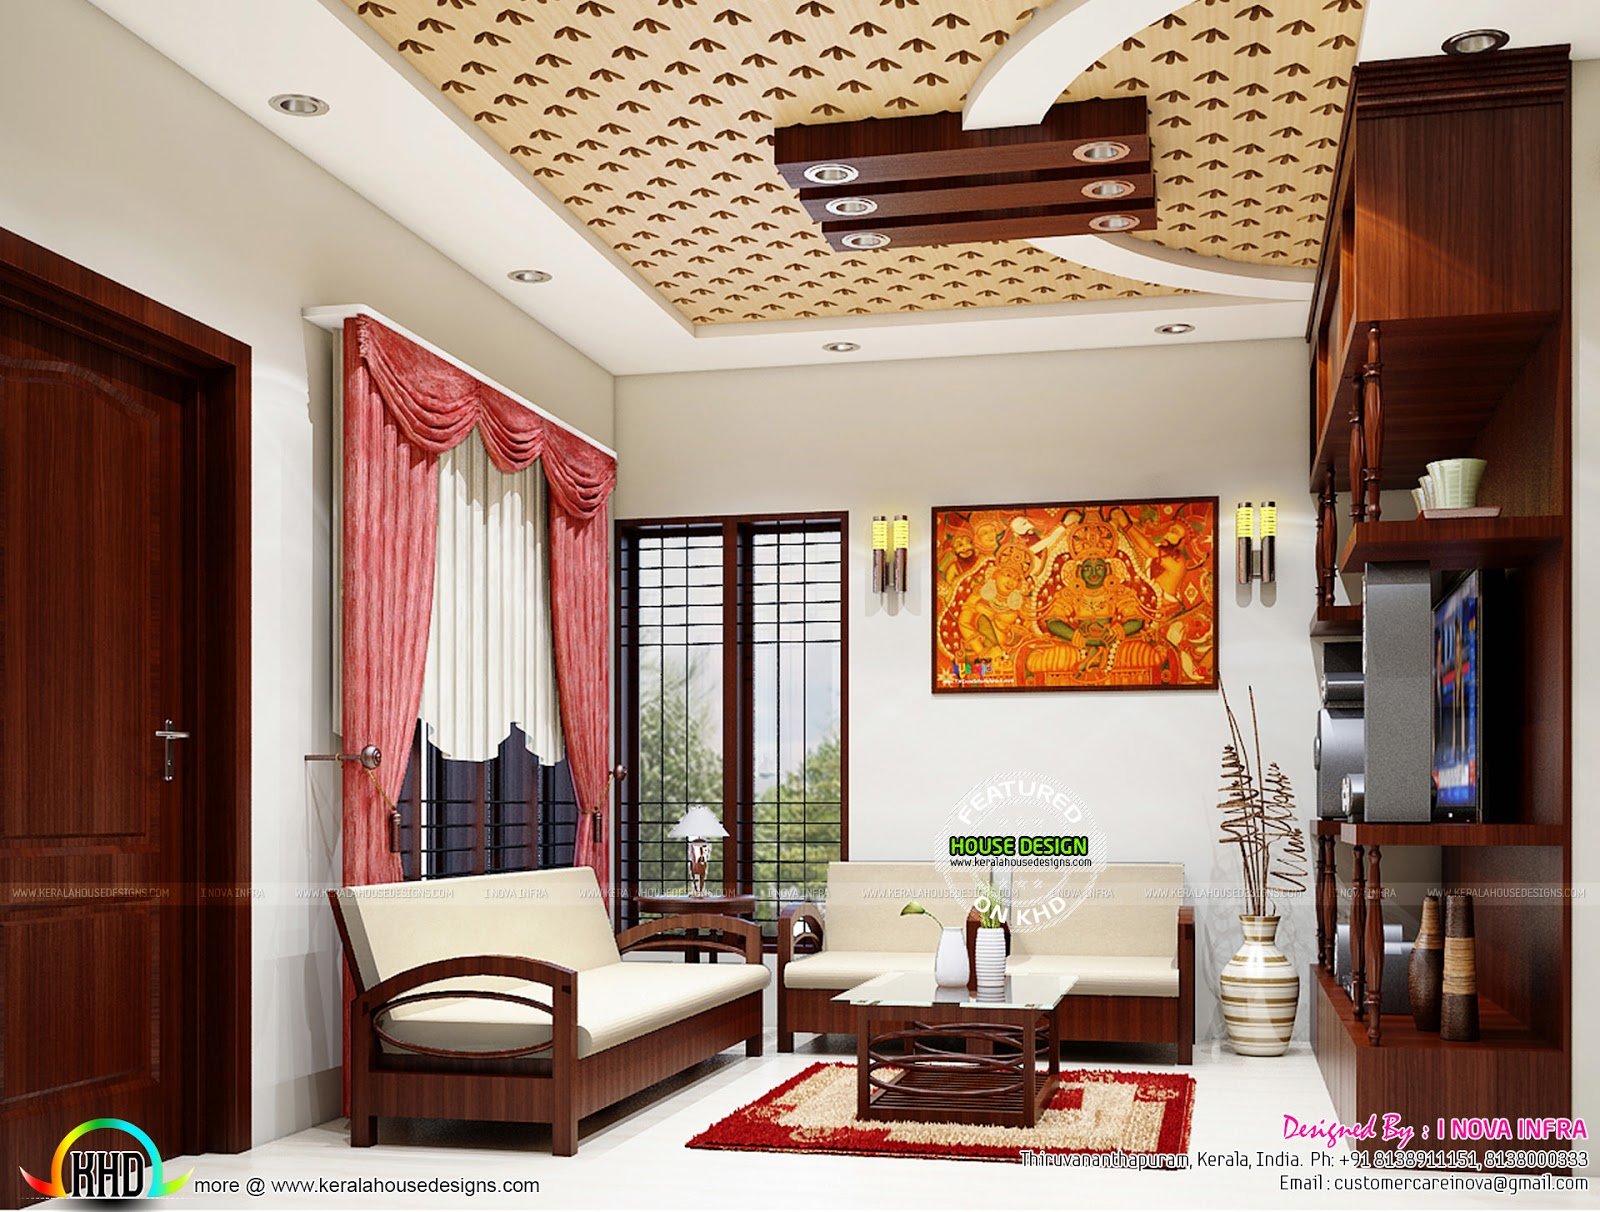 Kerala traditional interiors kerala home design and floor plans Interior design ideas for kerala houses